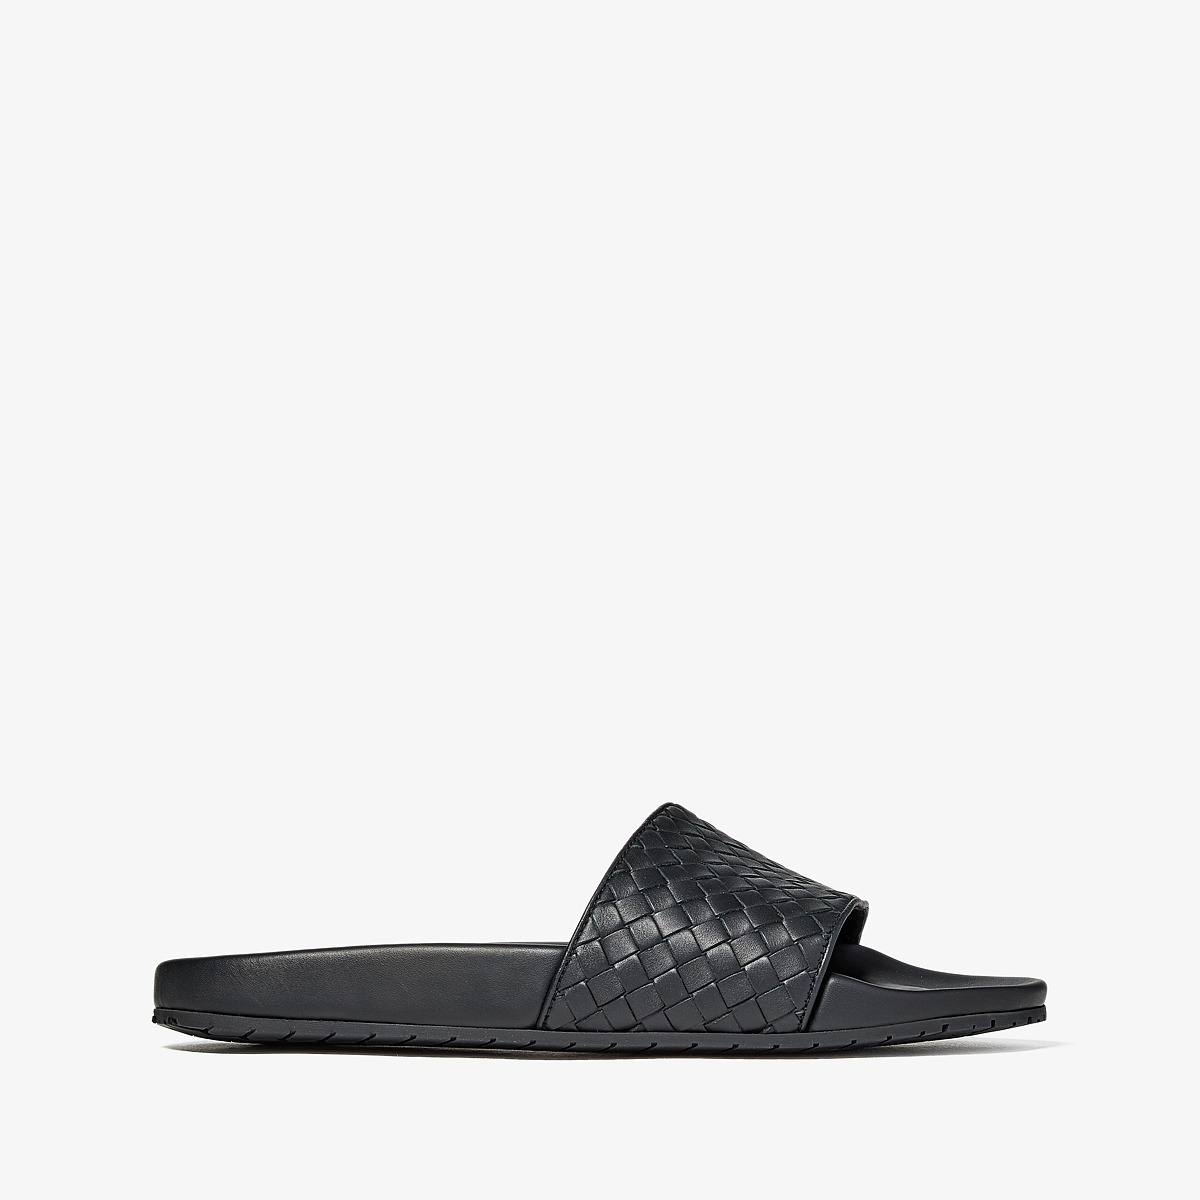 Bottega Veneta - Speedster Slide Sandal (Black) Men's Sandals